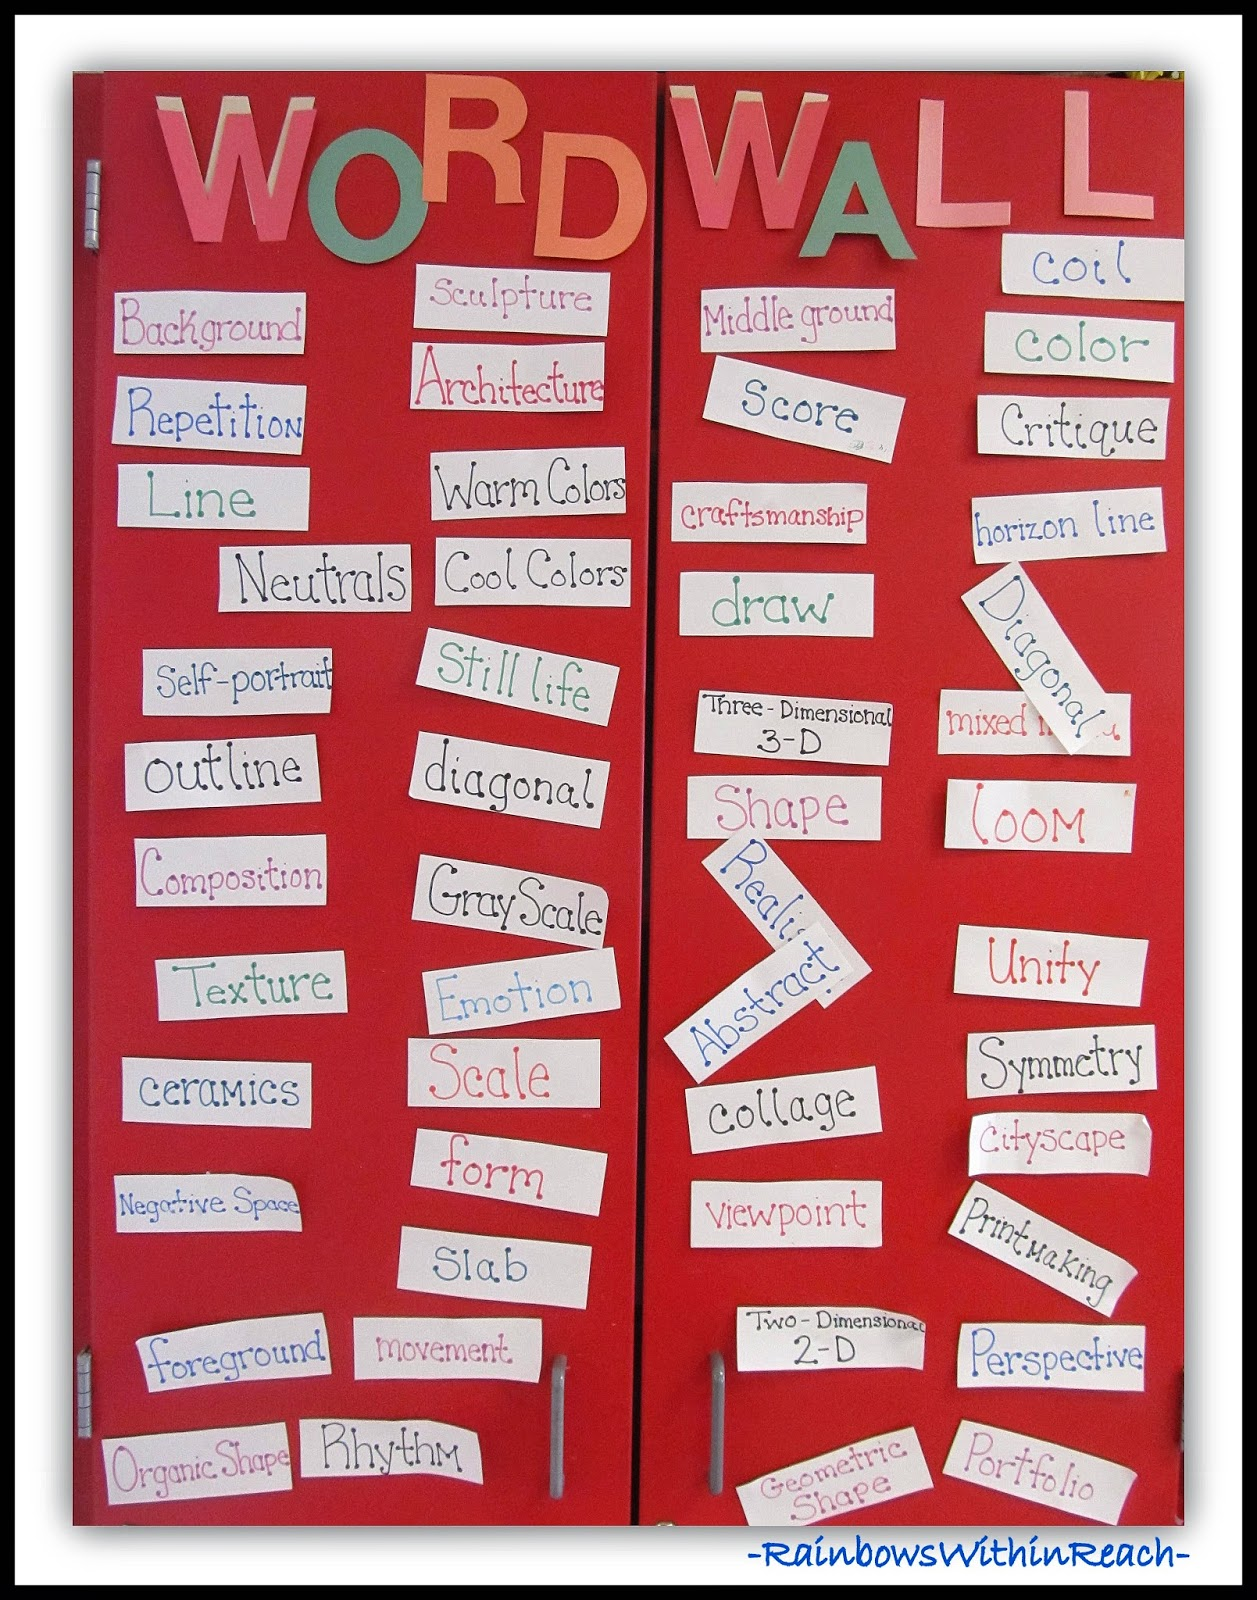 Word Wall for the Art Room: Word Wall RoundUP at RainbowsWithinReach